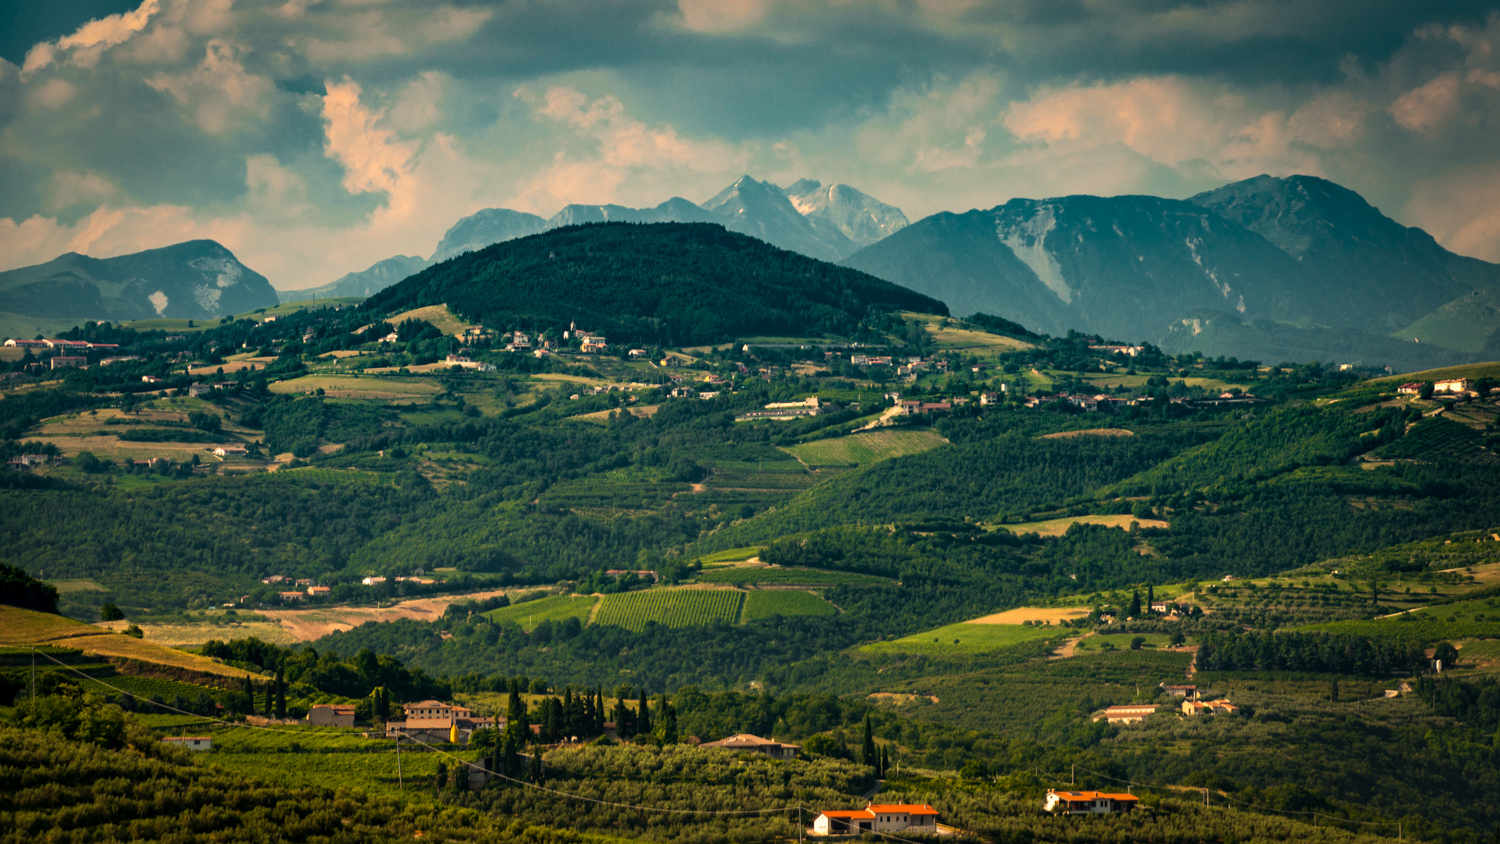 Italy : Veneto : Vineyards and mountains surrounding Tenuta Sant'Antonio's estate in Lavagno